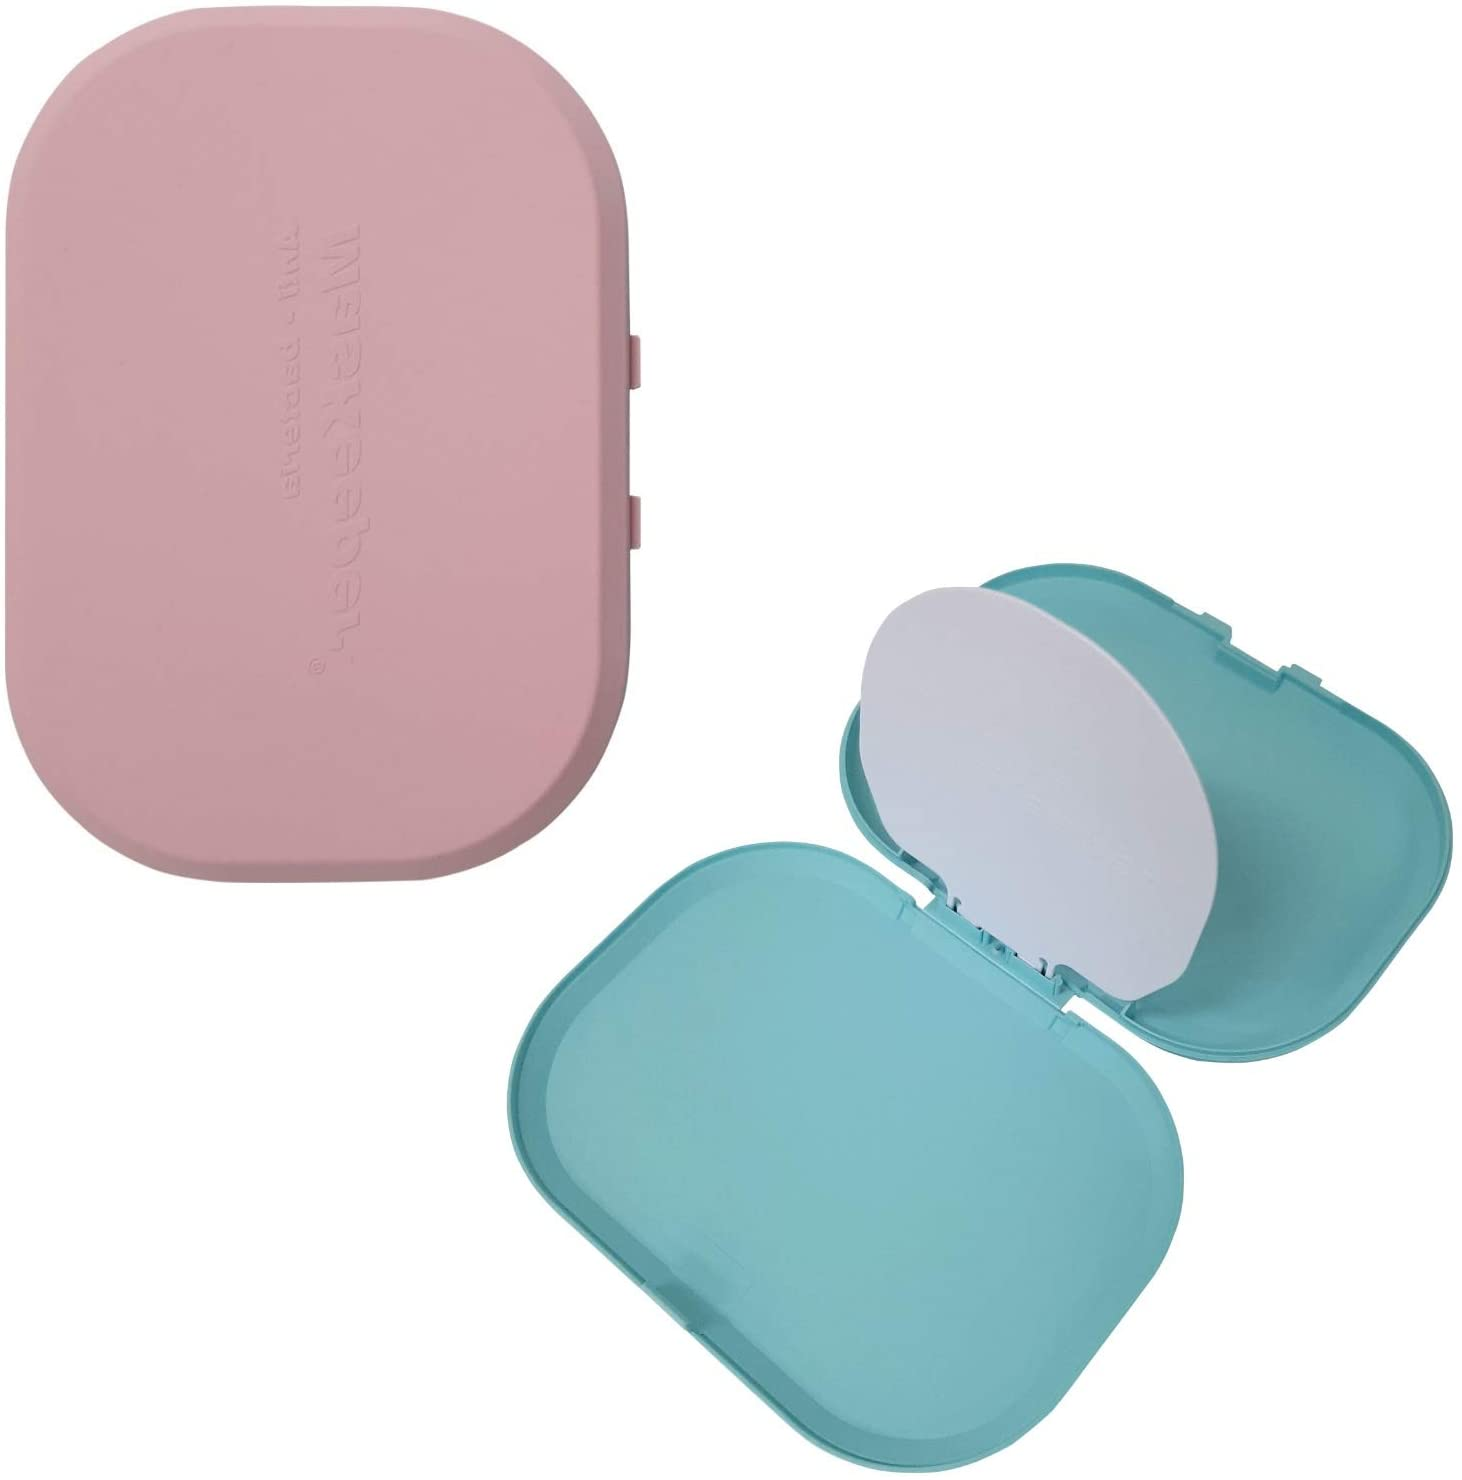 I'm K Mask Case, Thin Mask Storage Box, Mask Keeper, Fit To Bags and Pockets, Made with Innores technology, 2 Cases, Washable and Reusable (Pink & Mint)